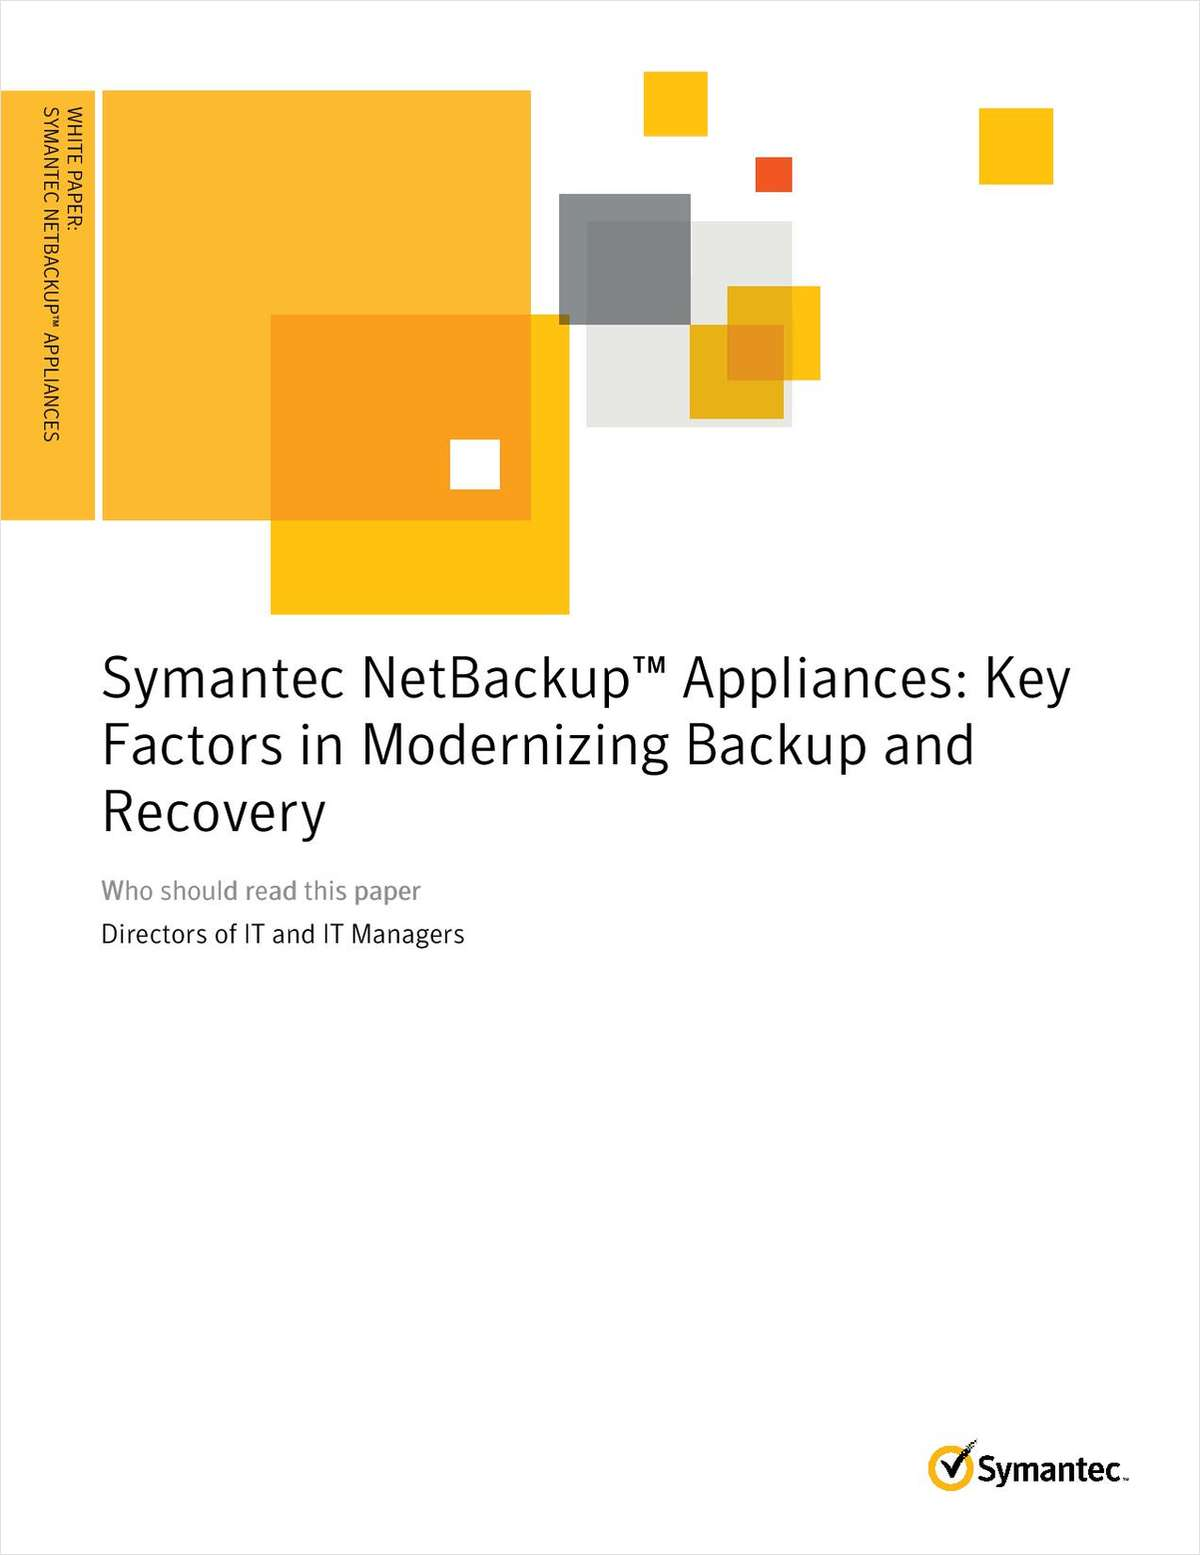 Symantec NetBackup™ Appliances: Key Factors in Modernizing Backup and Recovery